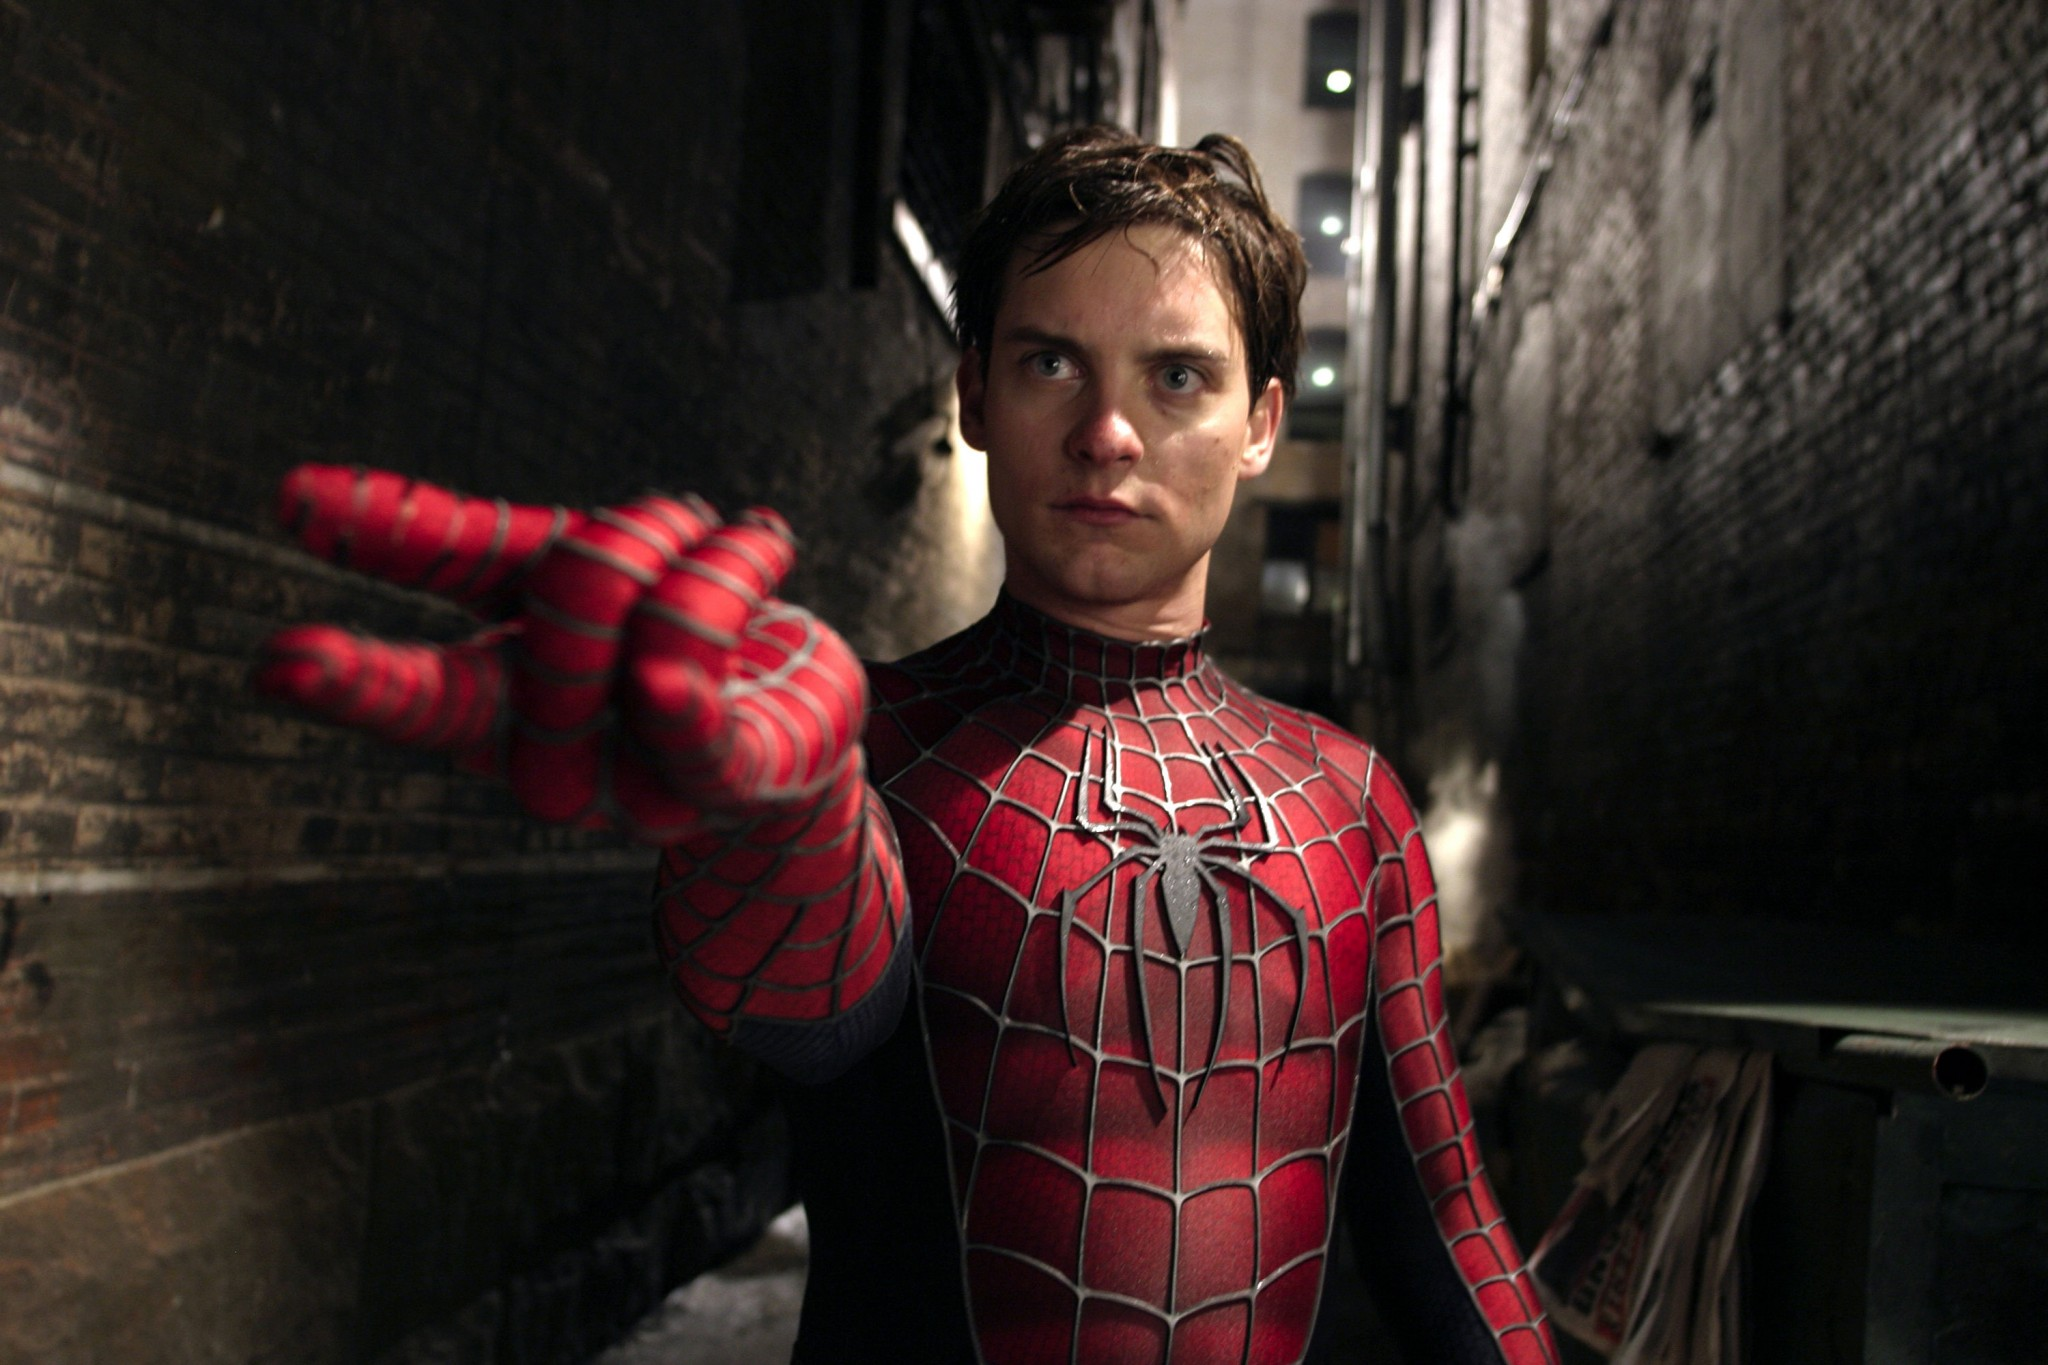 tobey-maguire-spider-man-the-spider-man-movie-that-we-almost-saw-jpeg-261931